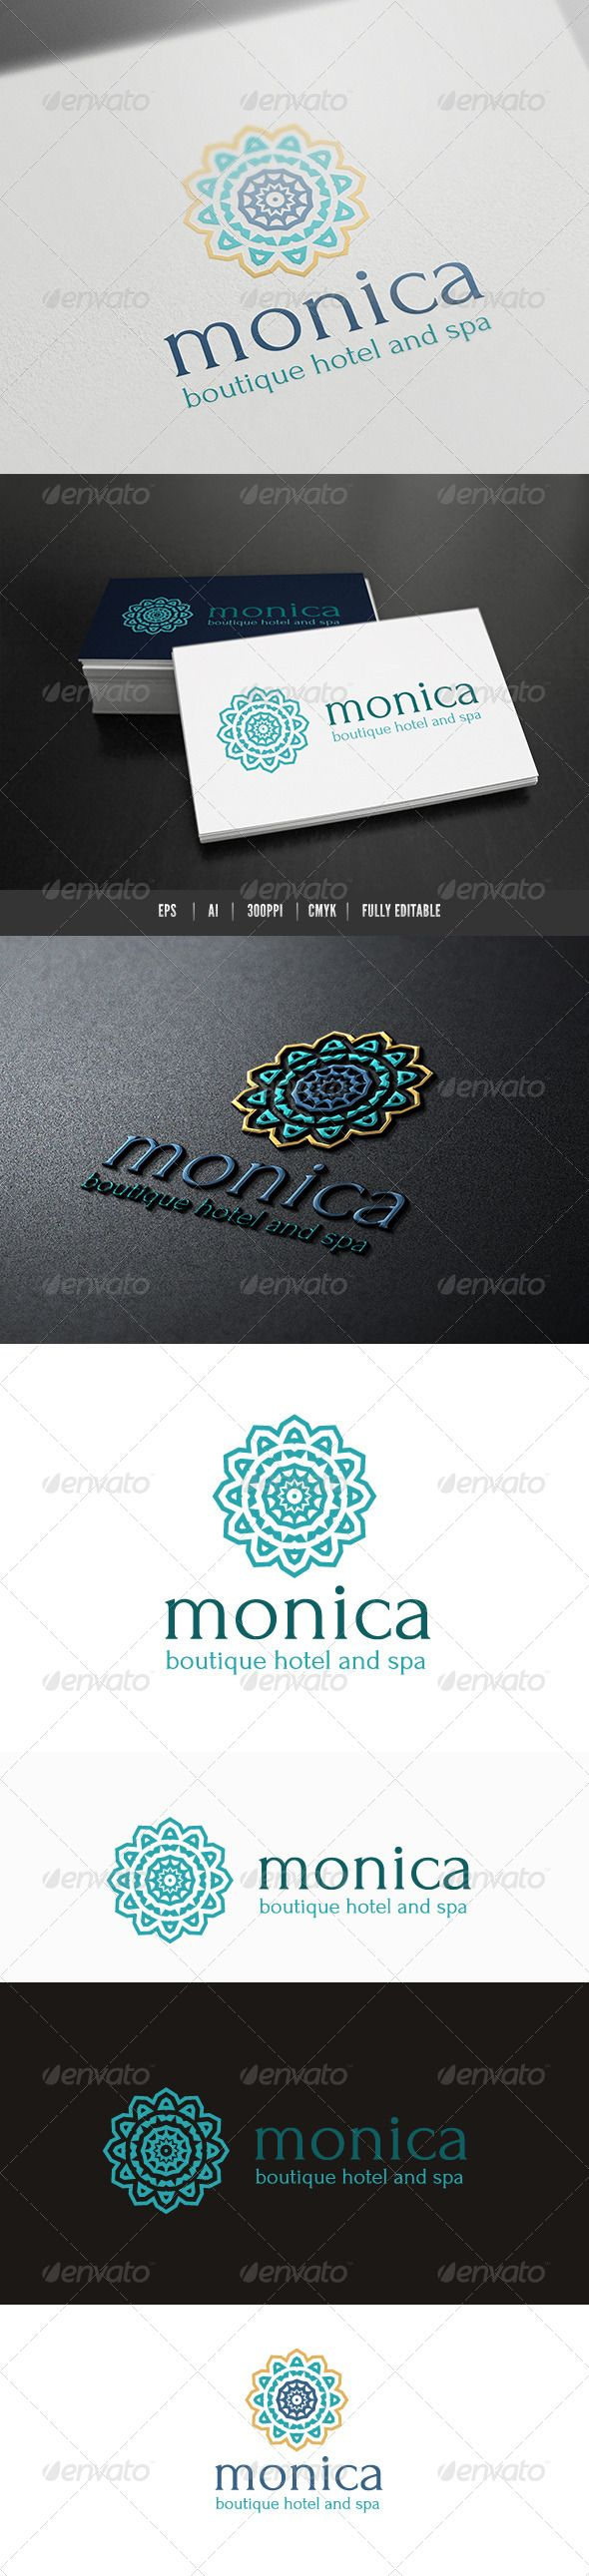 Boutique Hotel Spa — Vector EPS #monica #luxury • Available here → https://graphicriver.net/item/boutique-hotel-spa/8563154?ref=pxcr